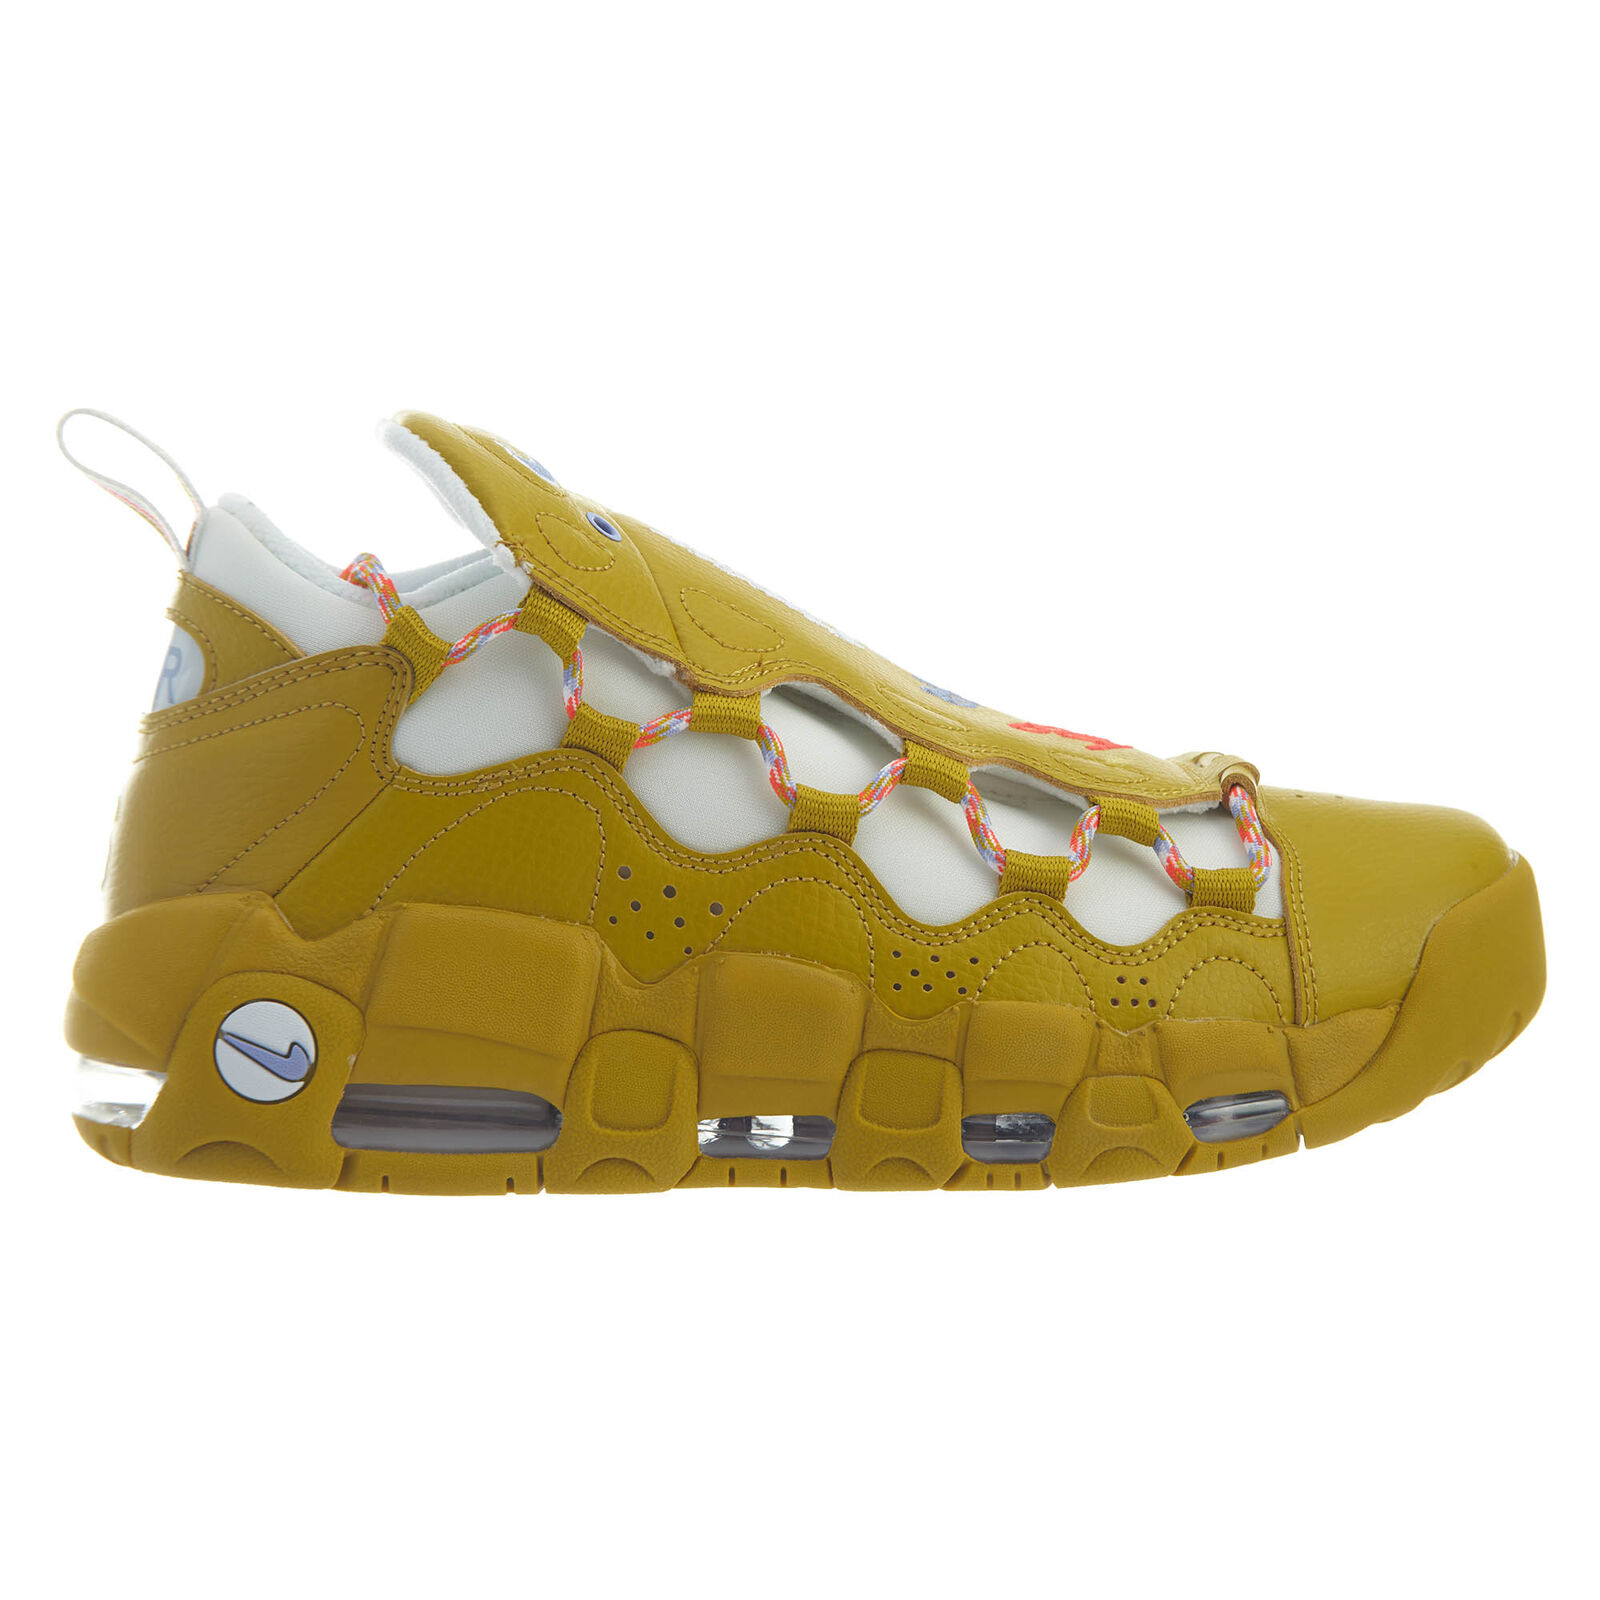 Nike Nike Nike Air More Money Meant to Fly Womens AO1749-300 Dark Citron shoes Size 10 3ec3a2